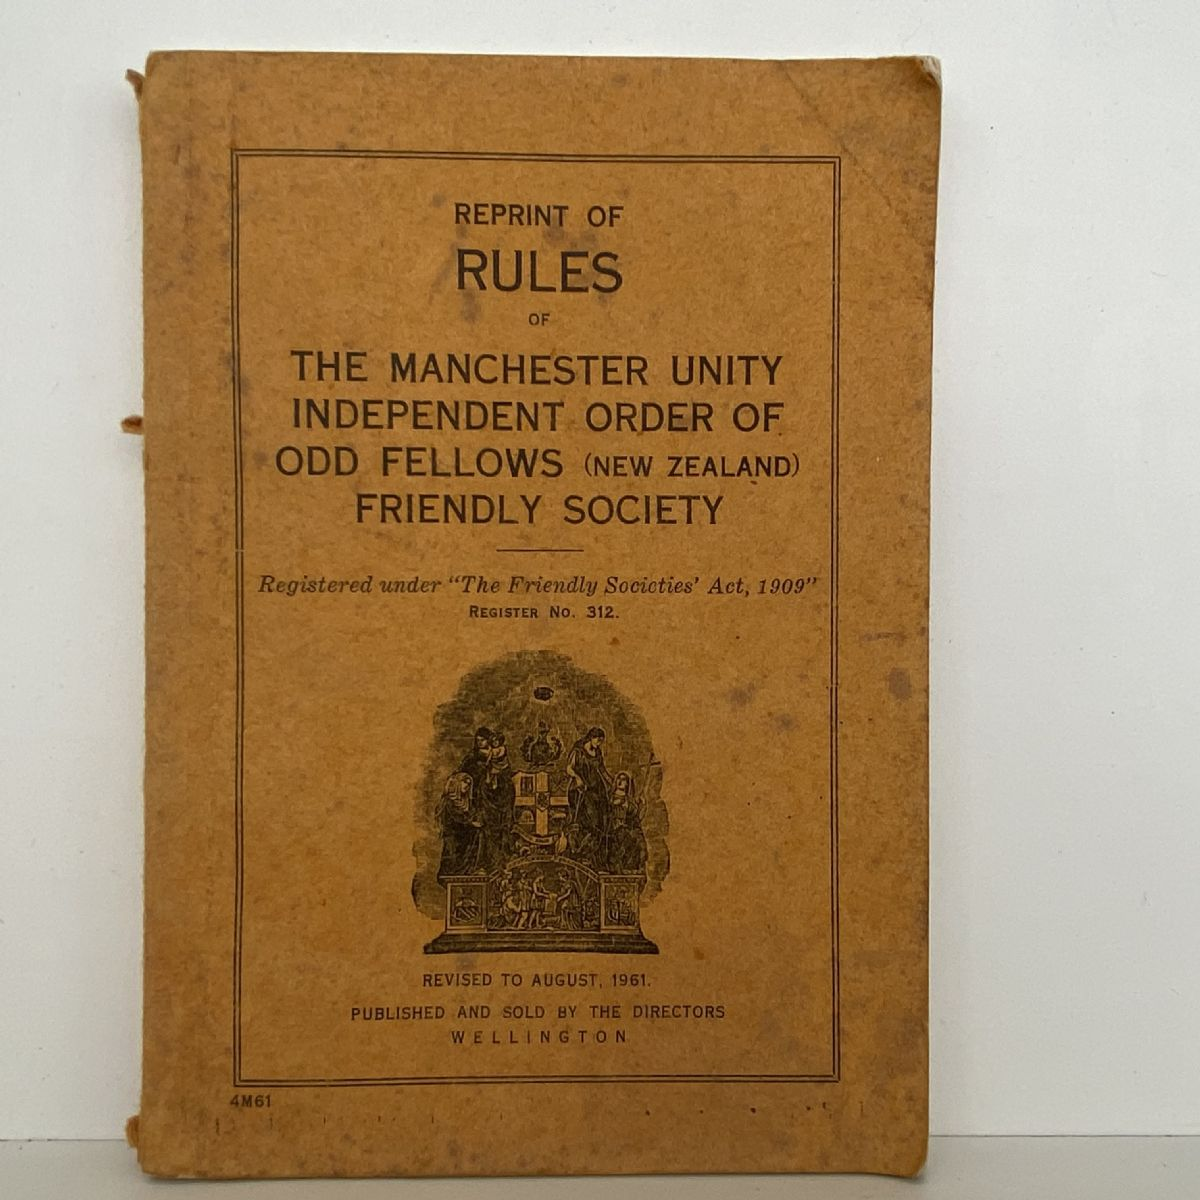 RULES of The Manchester Unity Independent Order of Odd Fellows Society